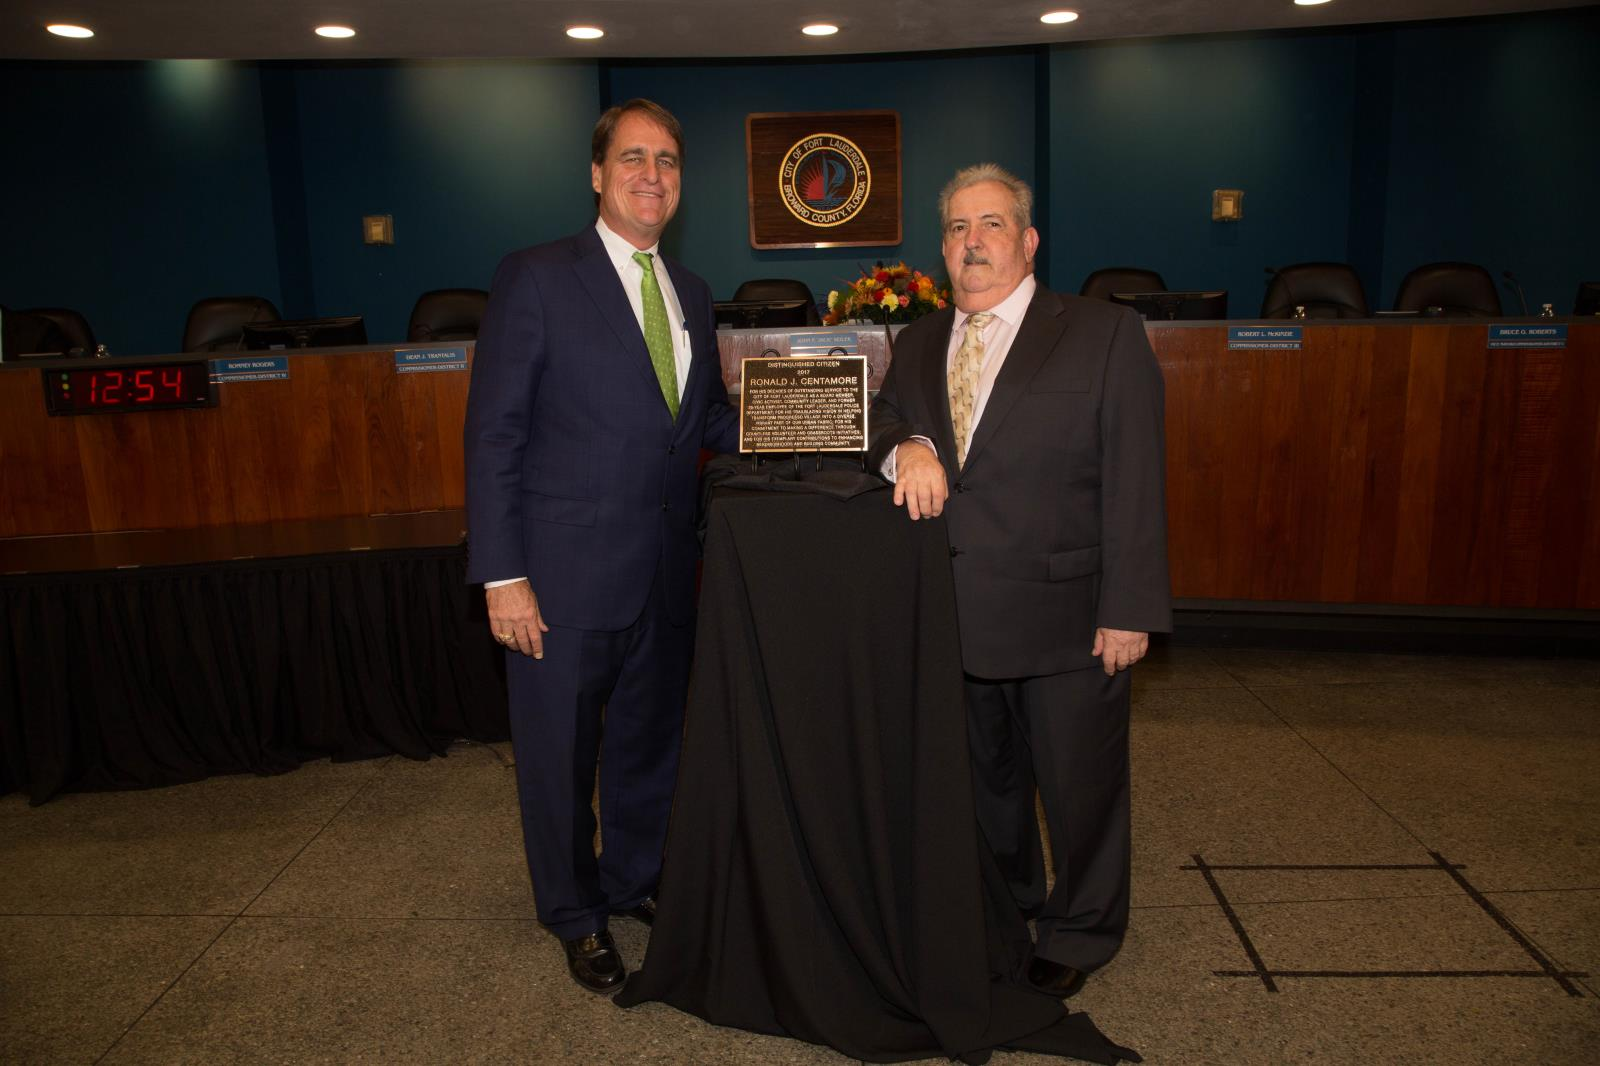 Mayor Jack Seiler with 2017 Distinguished Citizen Ronald J. Centamore